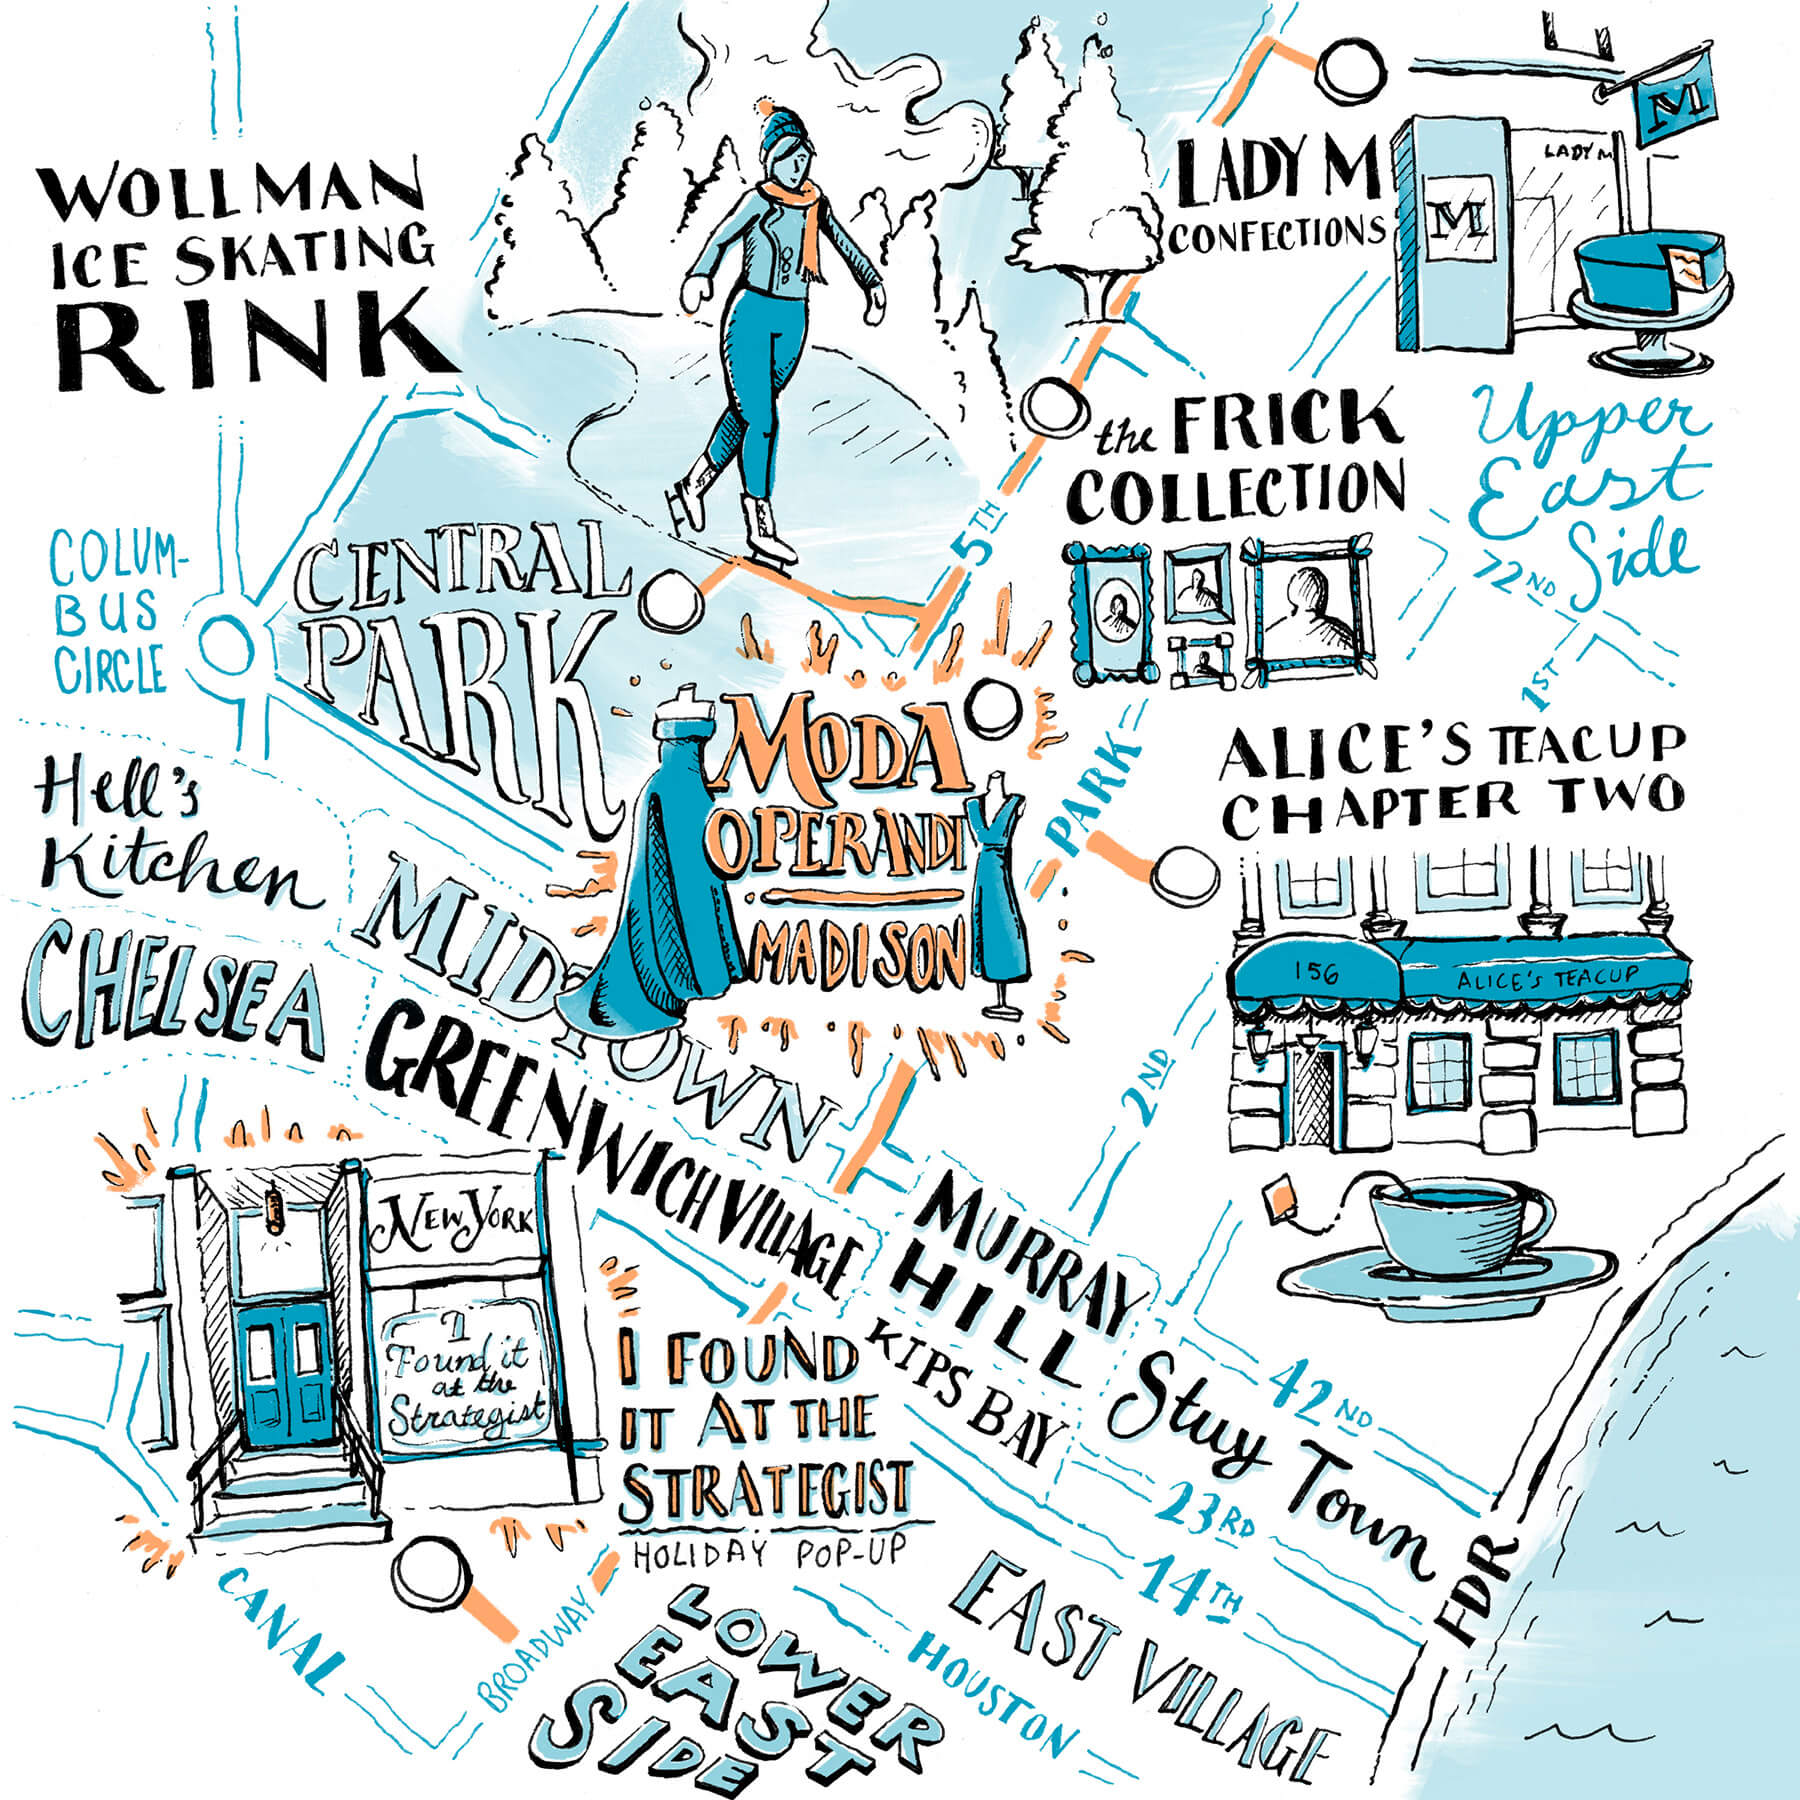 Indya Brown's Map - Ice skating in Central Park, Moda Operandi, Lady M Confections, the Frick Collection, Alice's Teacup Chapter Two, I Found It At The Strategist Holiday Pop-Up, and more.